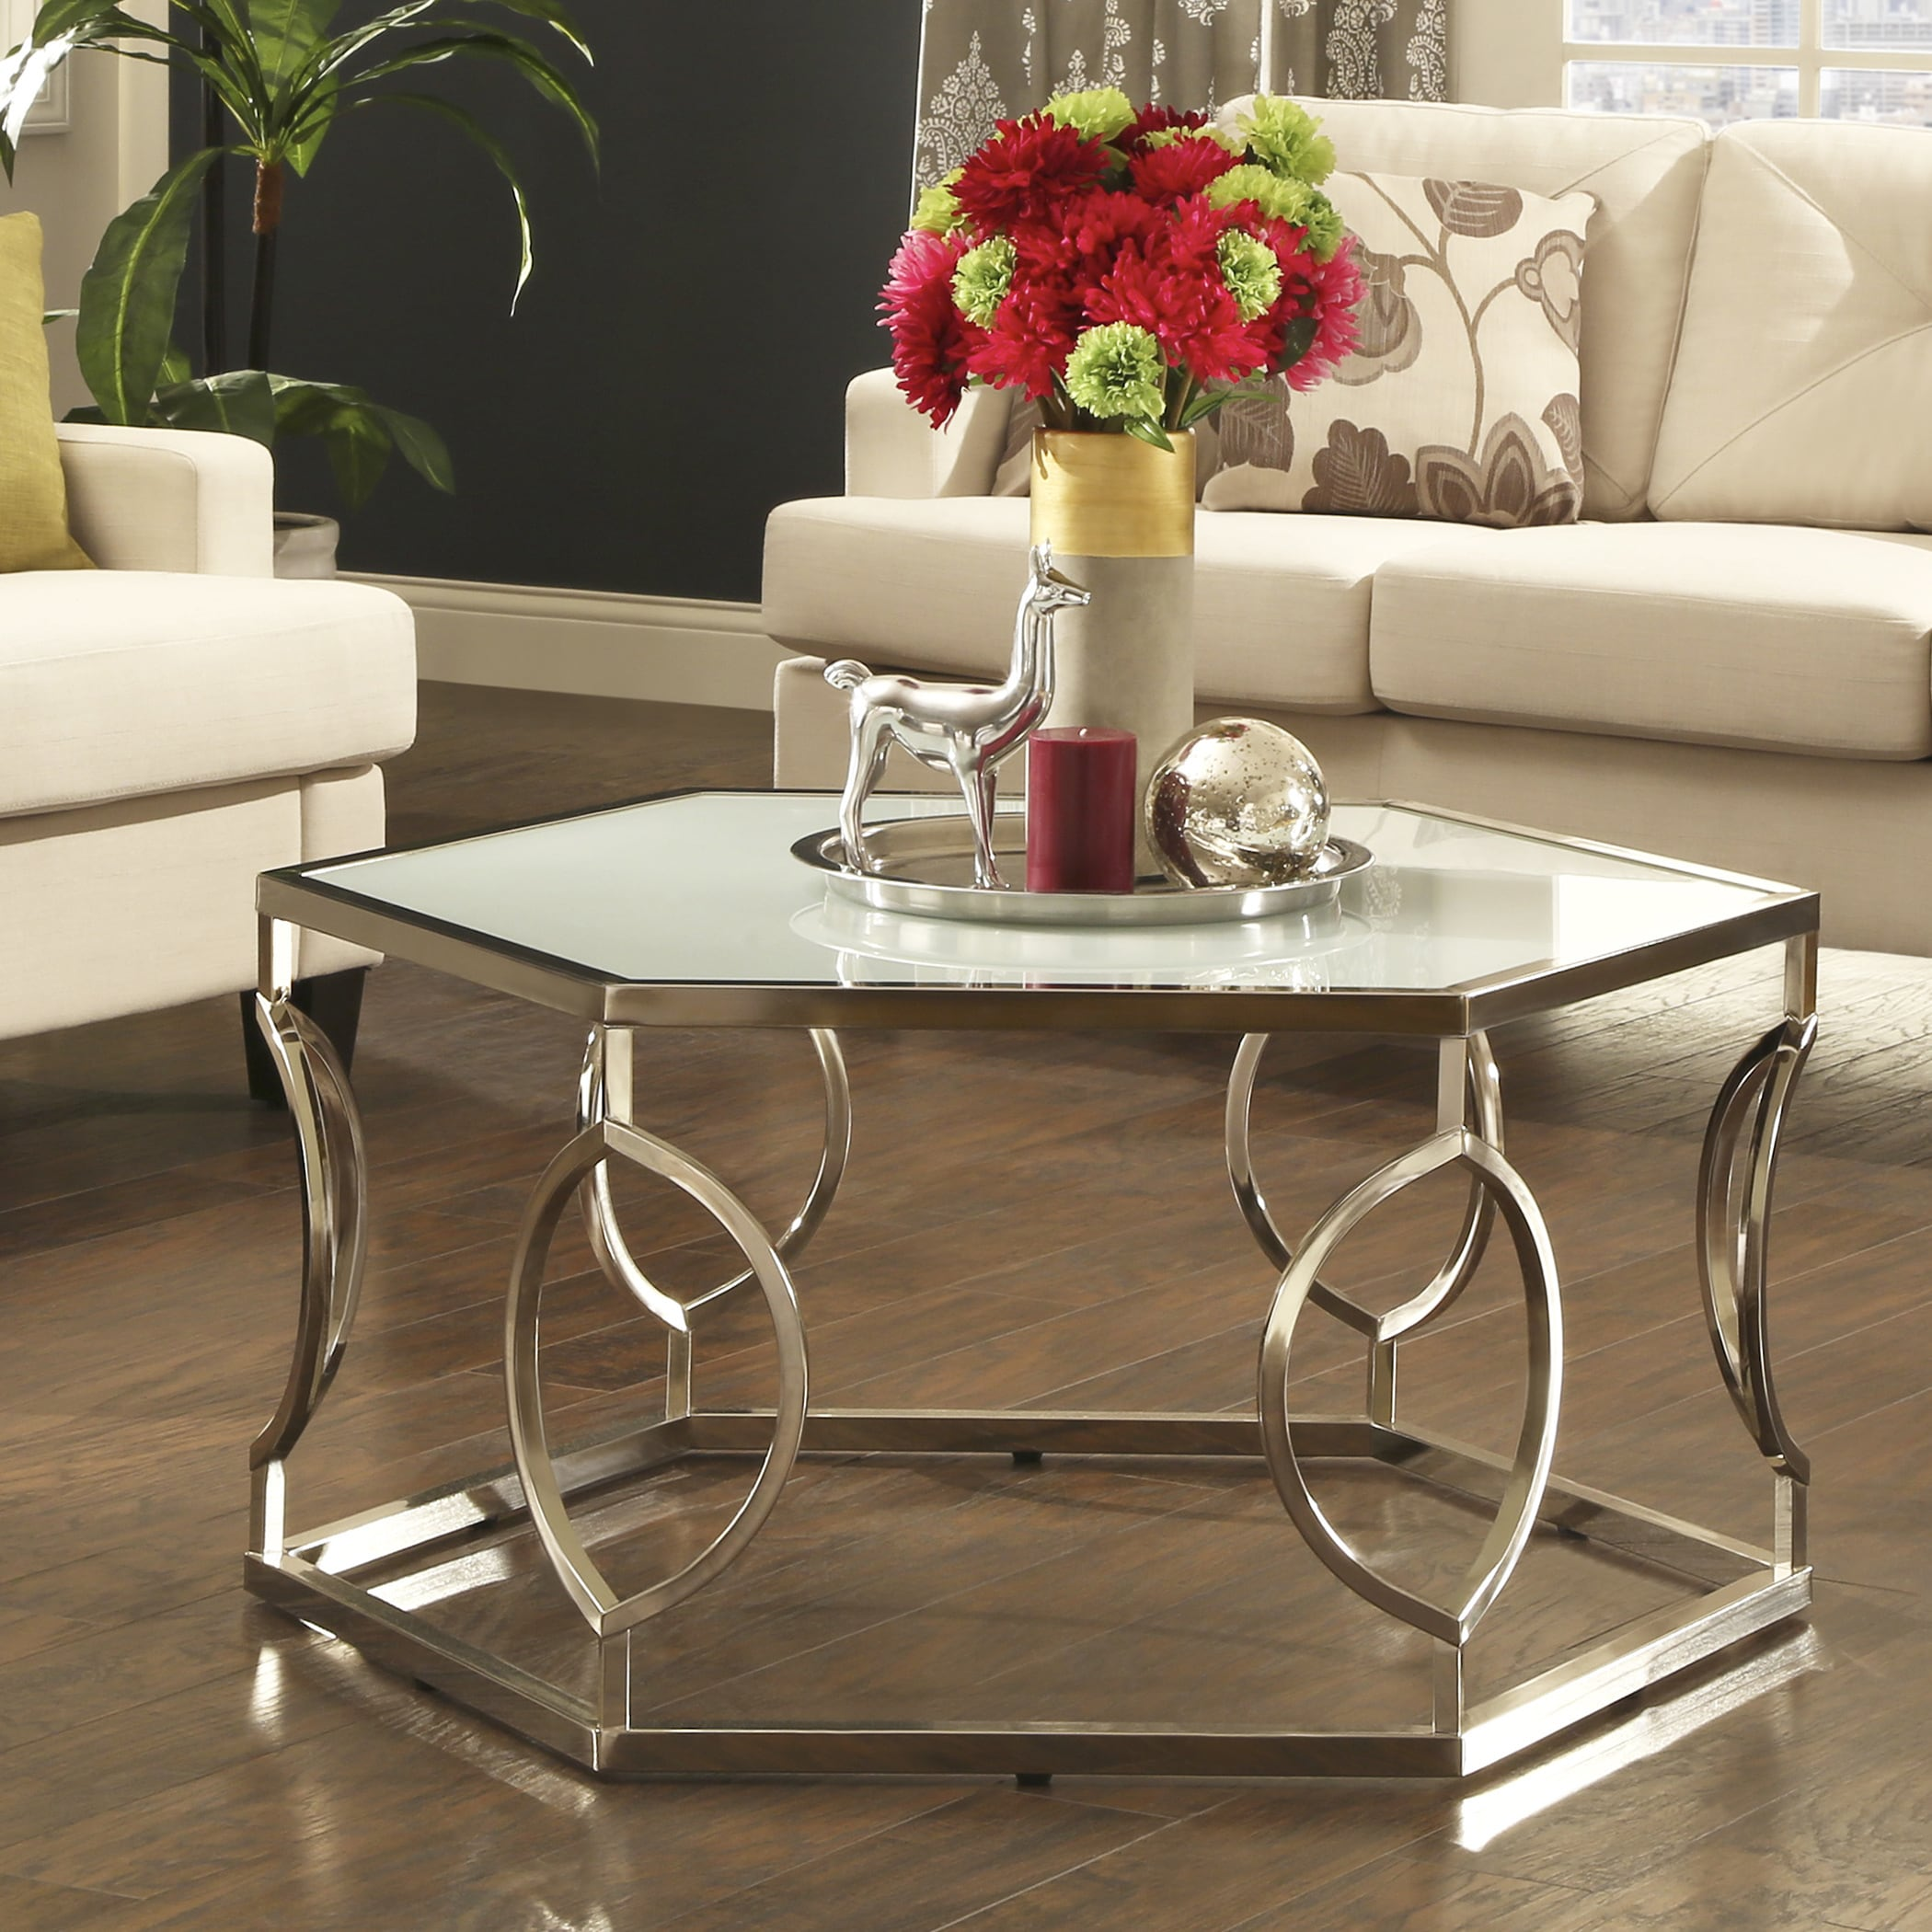 Davlin Contemporary Glam Hexagonal Metal Frosted-glass Coffee Table by  iNSPIRE Q Bold - Free Shipping Today - Overstock.com - 16986113